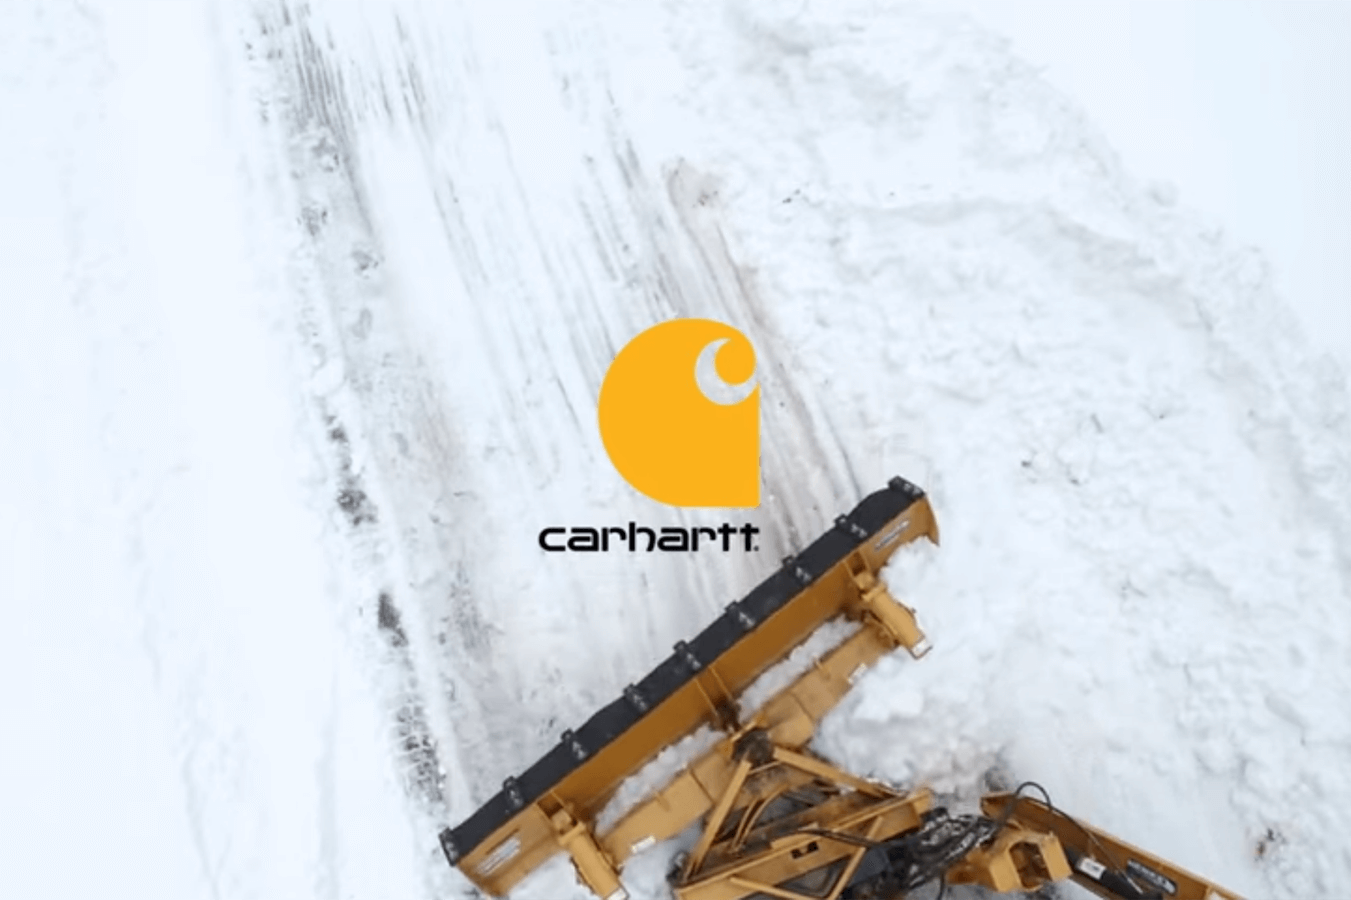 """Carhartt Salutes Yoopers & Their Life """"Up North"""""""